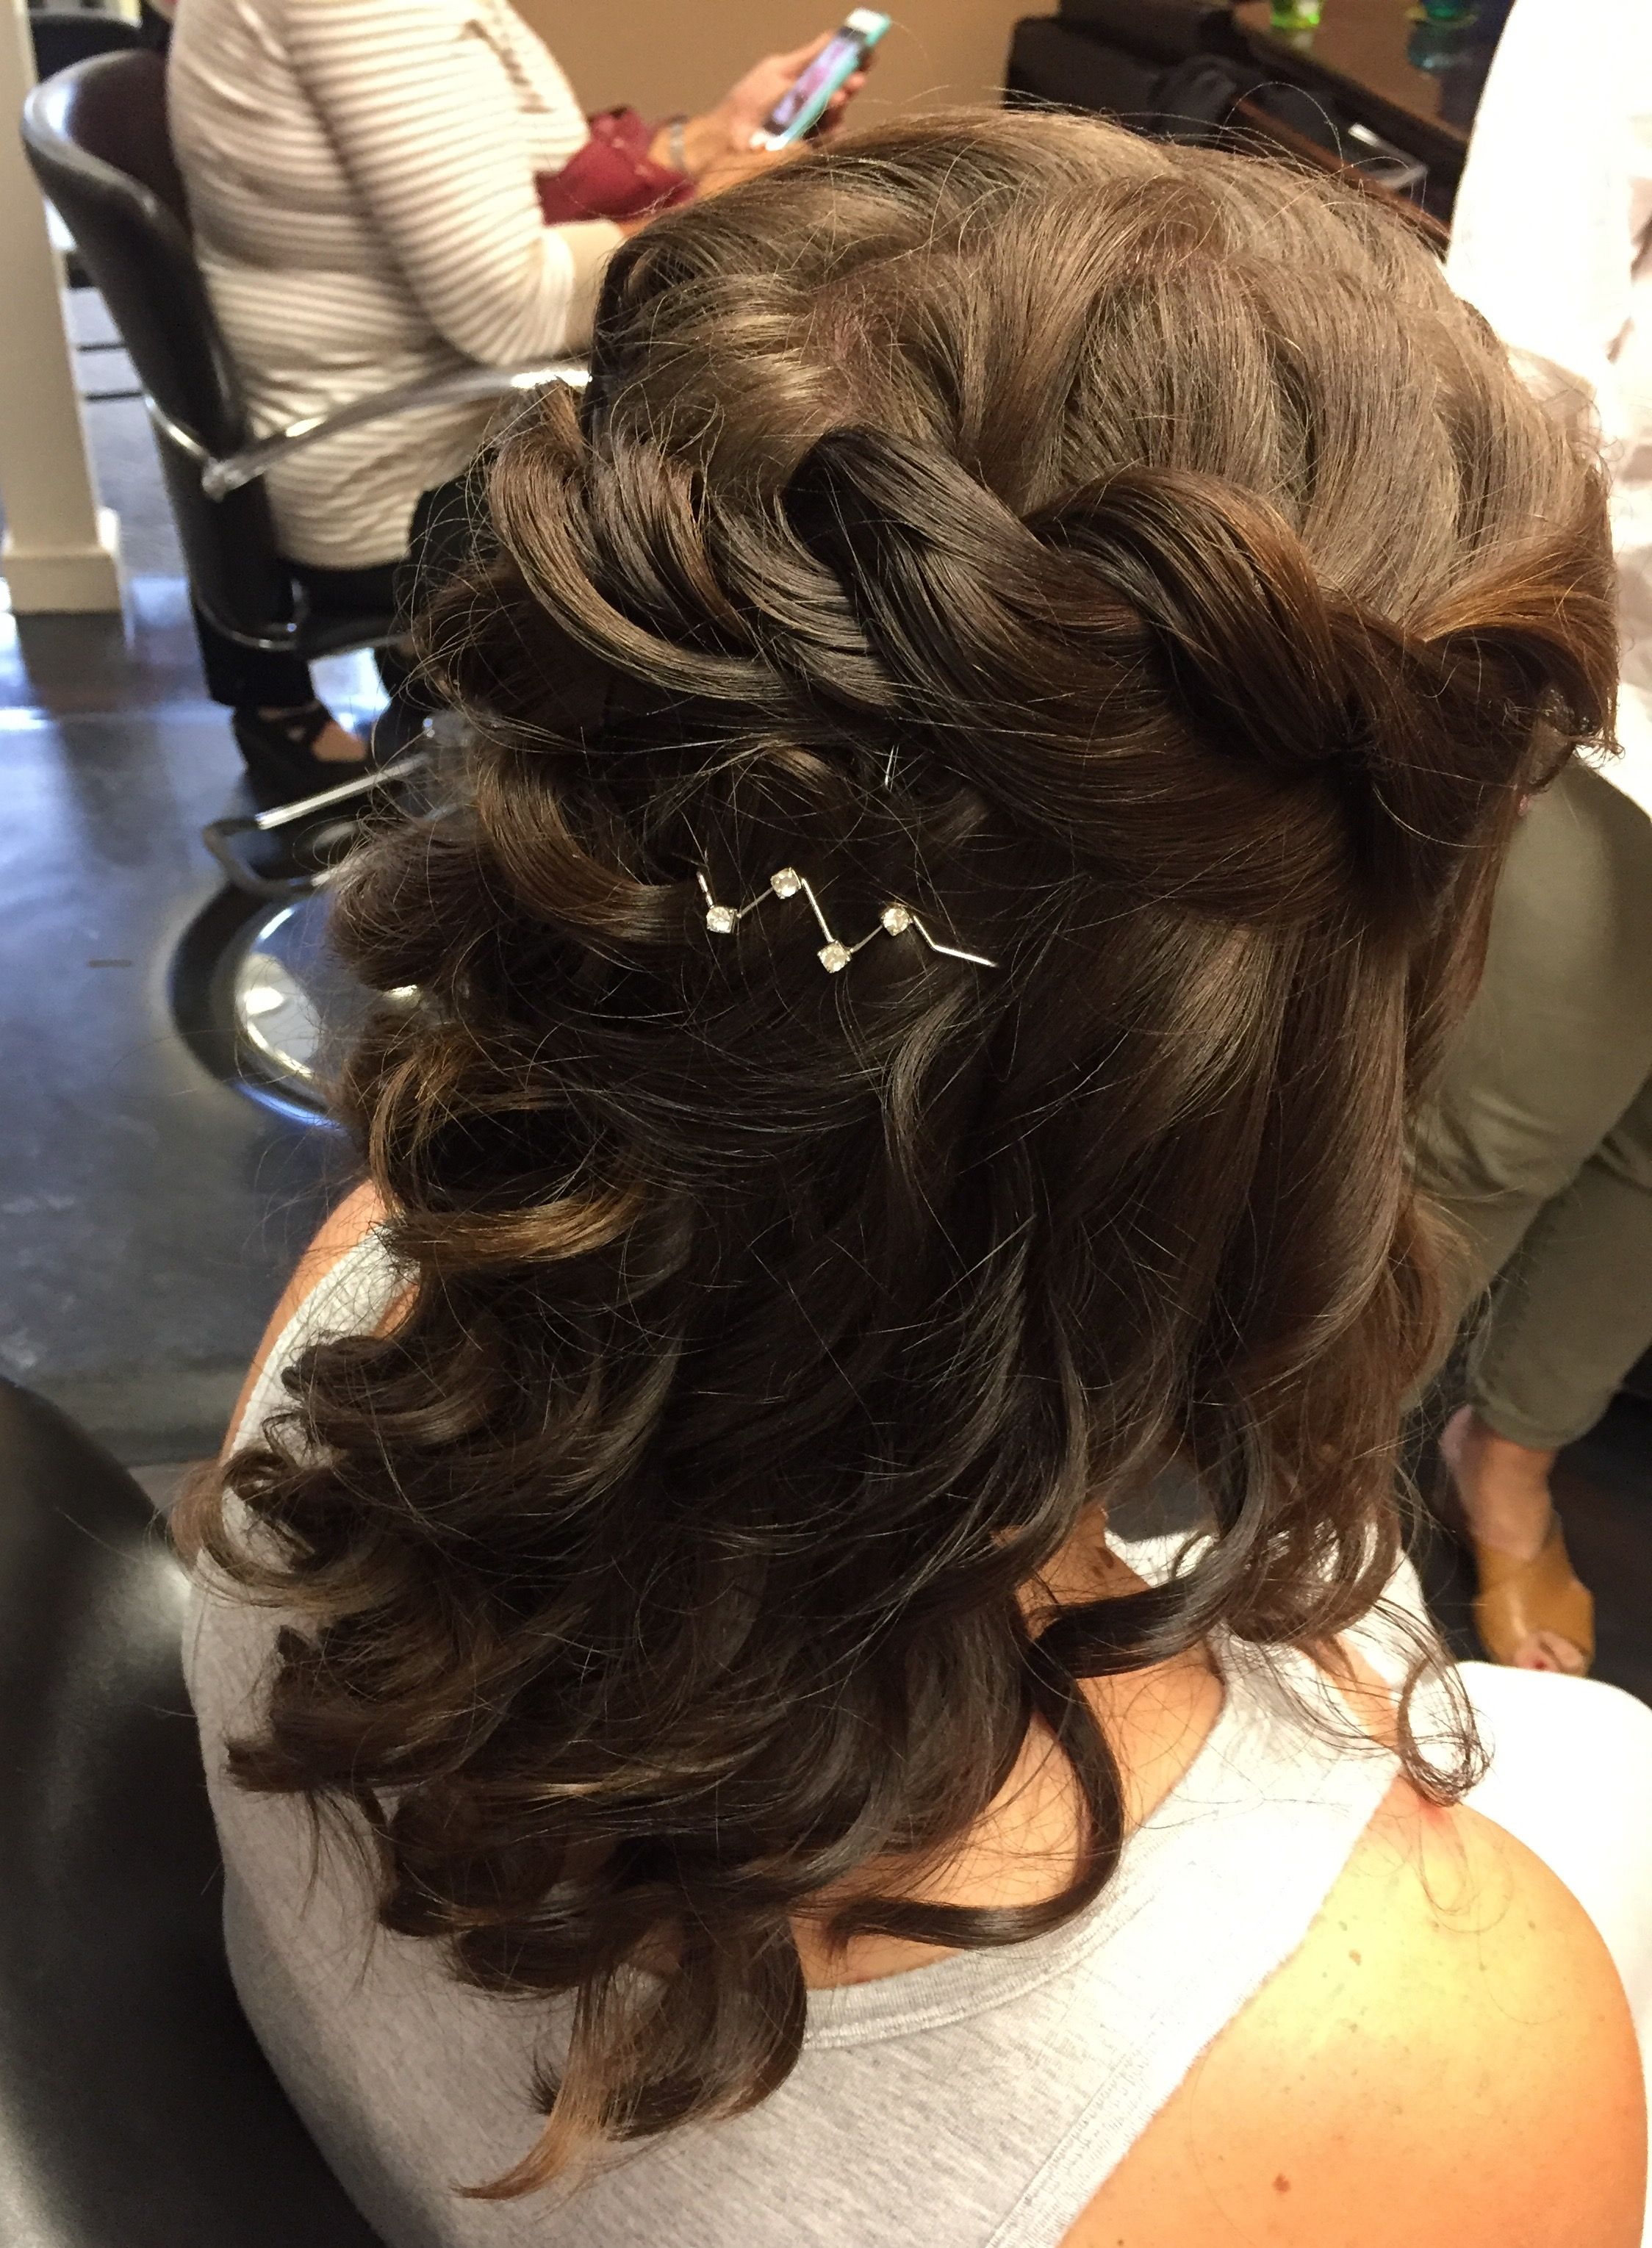 1 2 Up 1 2 Down Updo Wedding Updo Hair Styles Hair Wrap